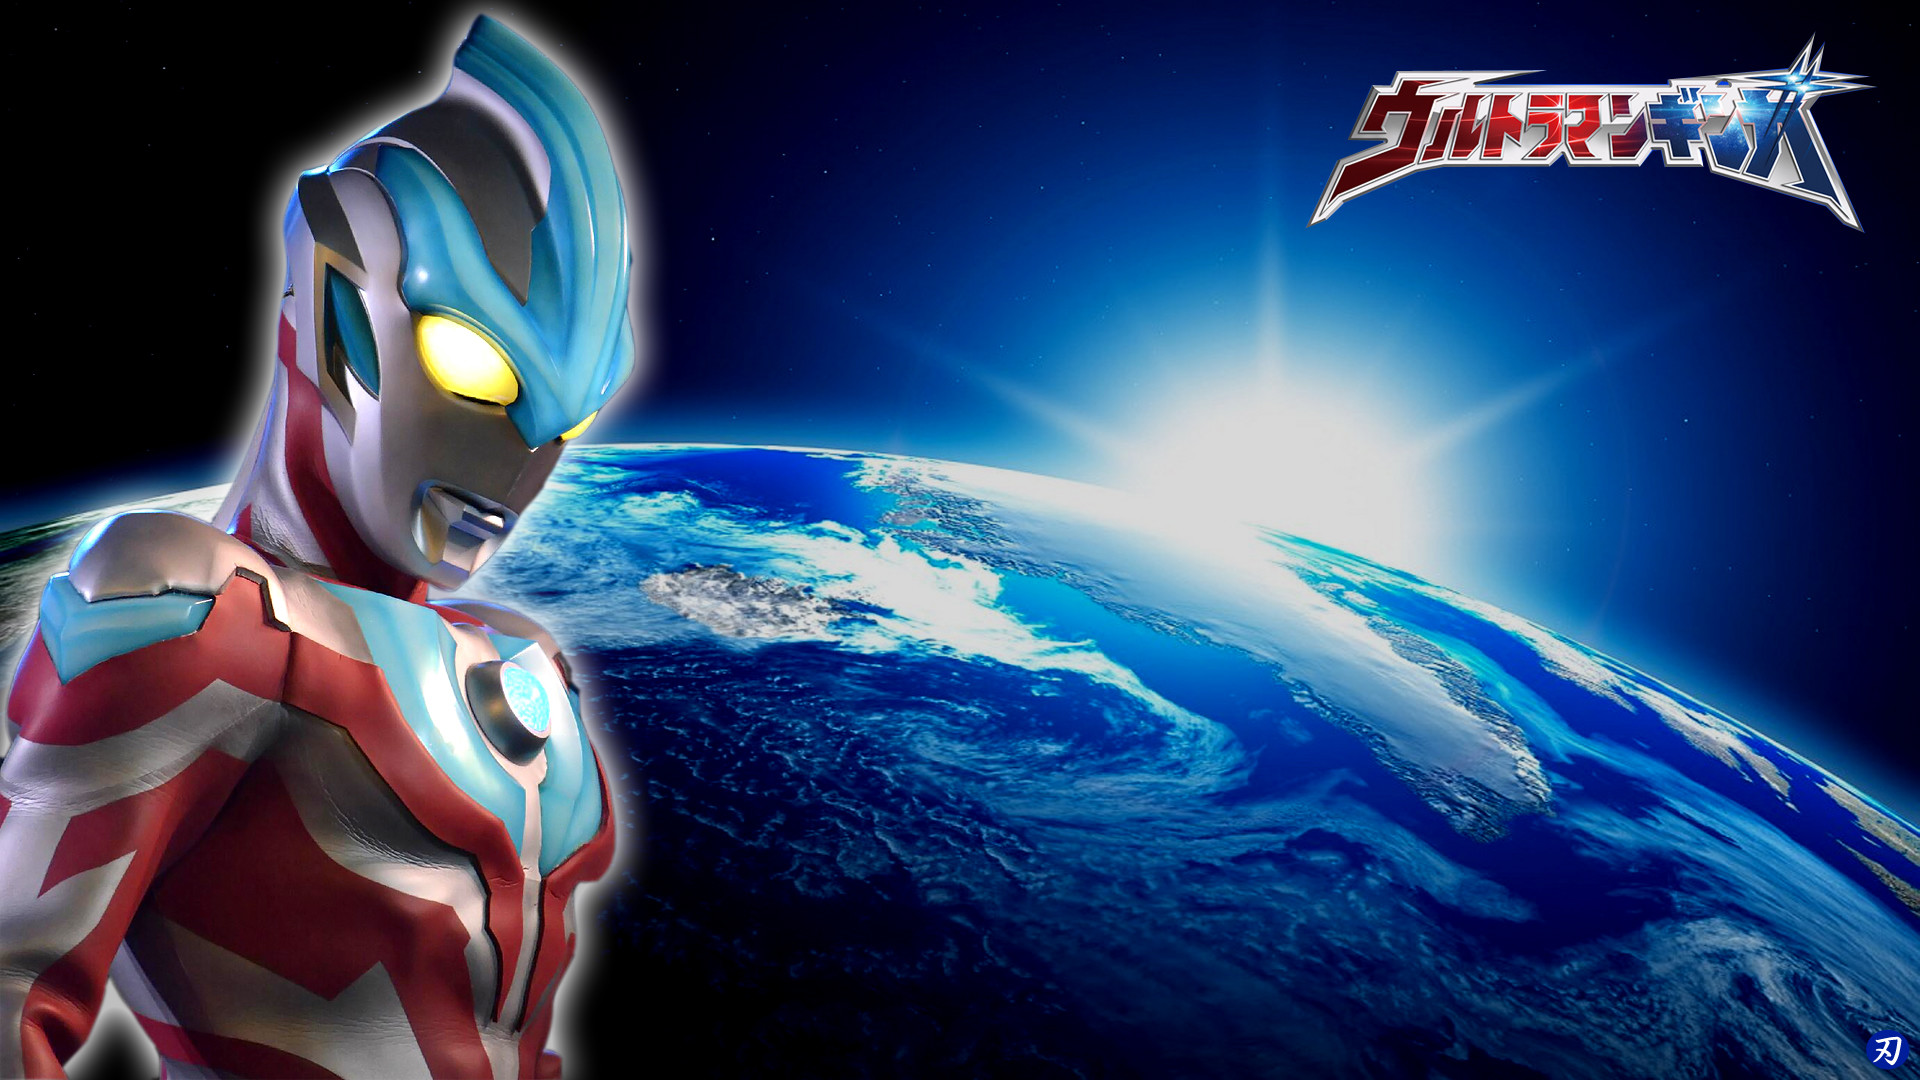 Ultraman Wallpapers (79+ images)